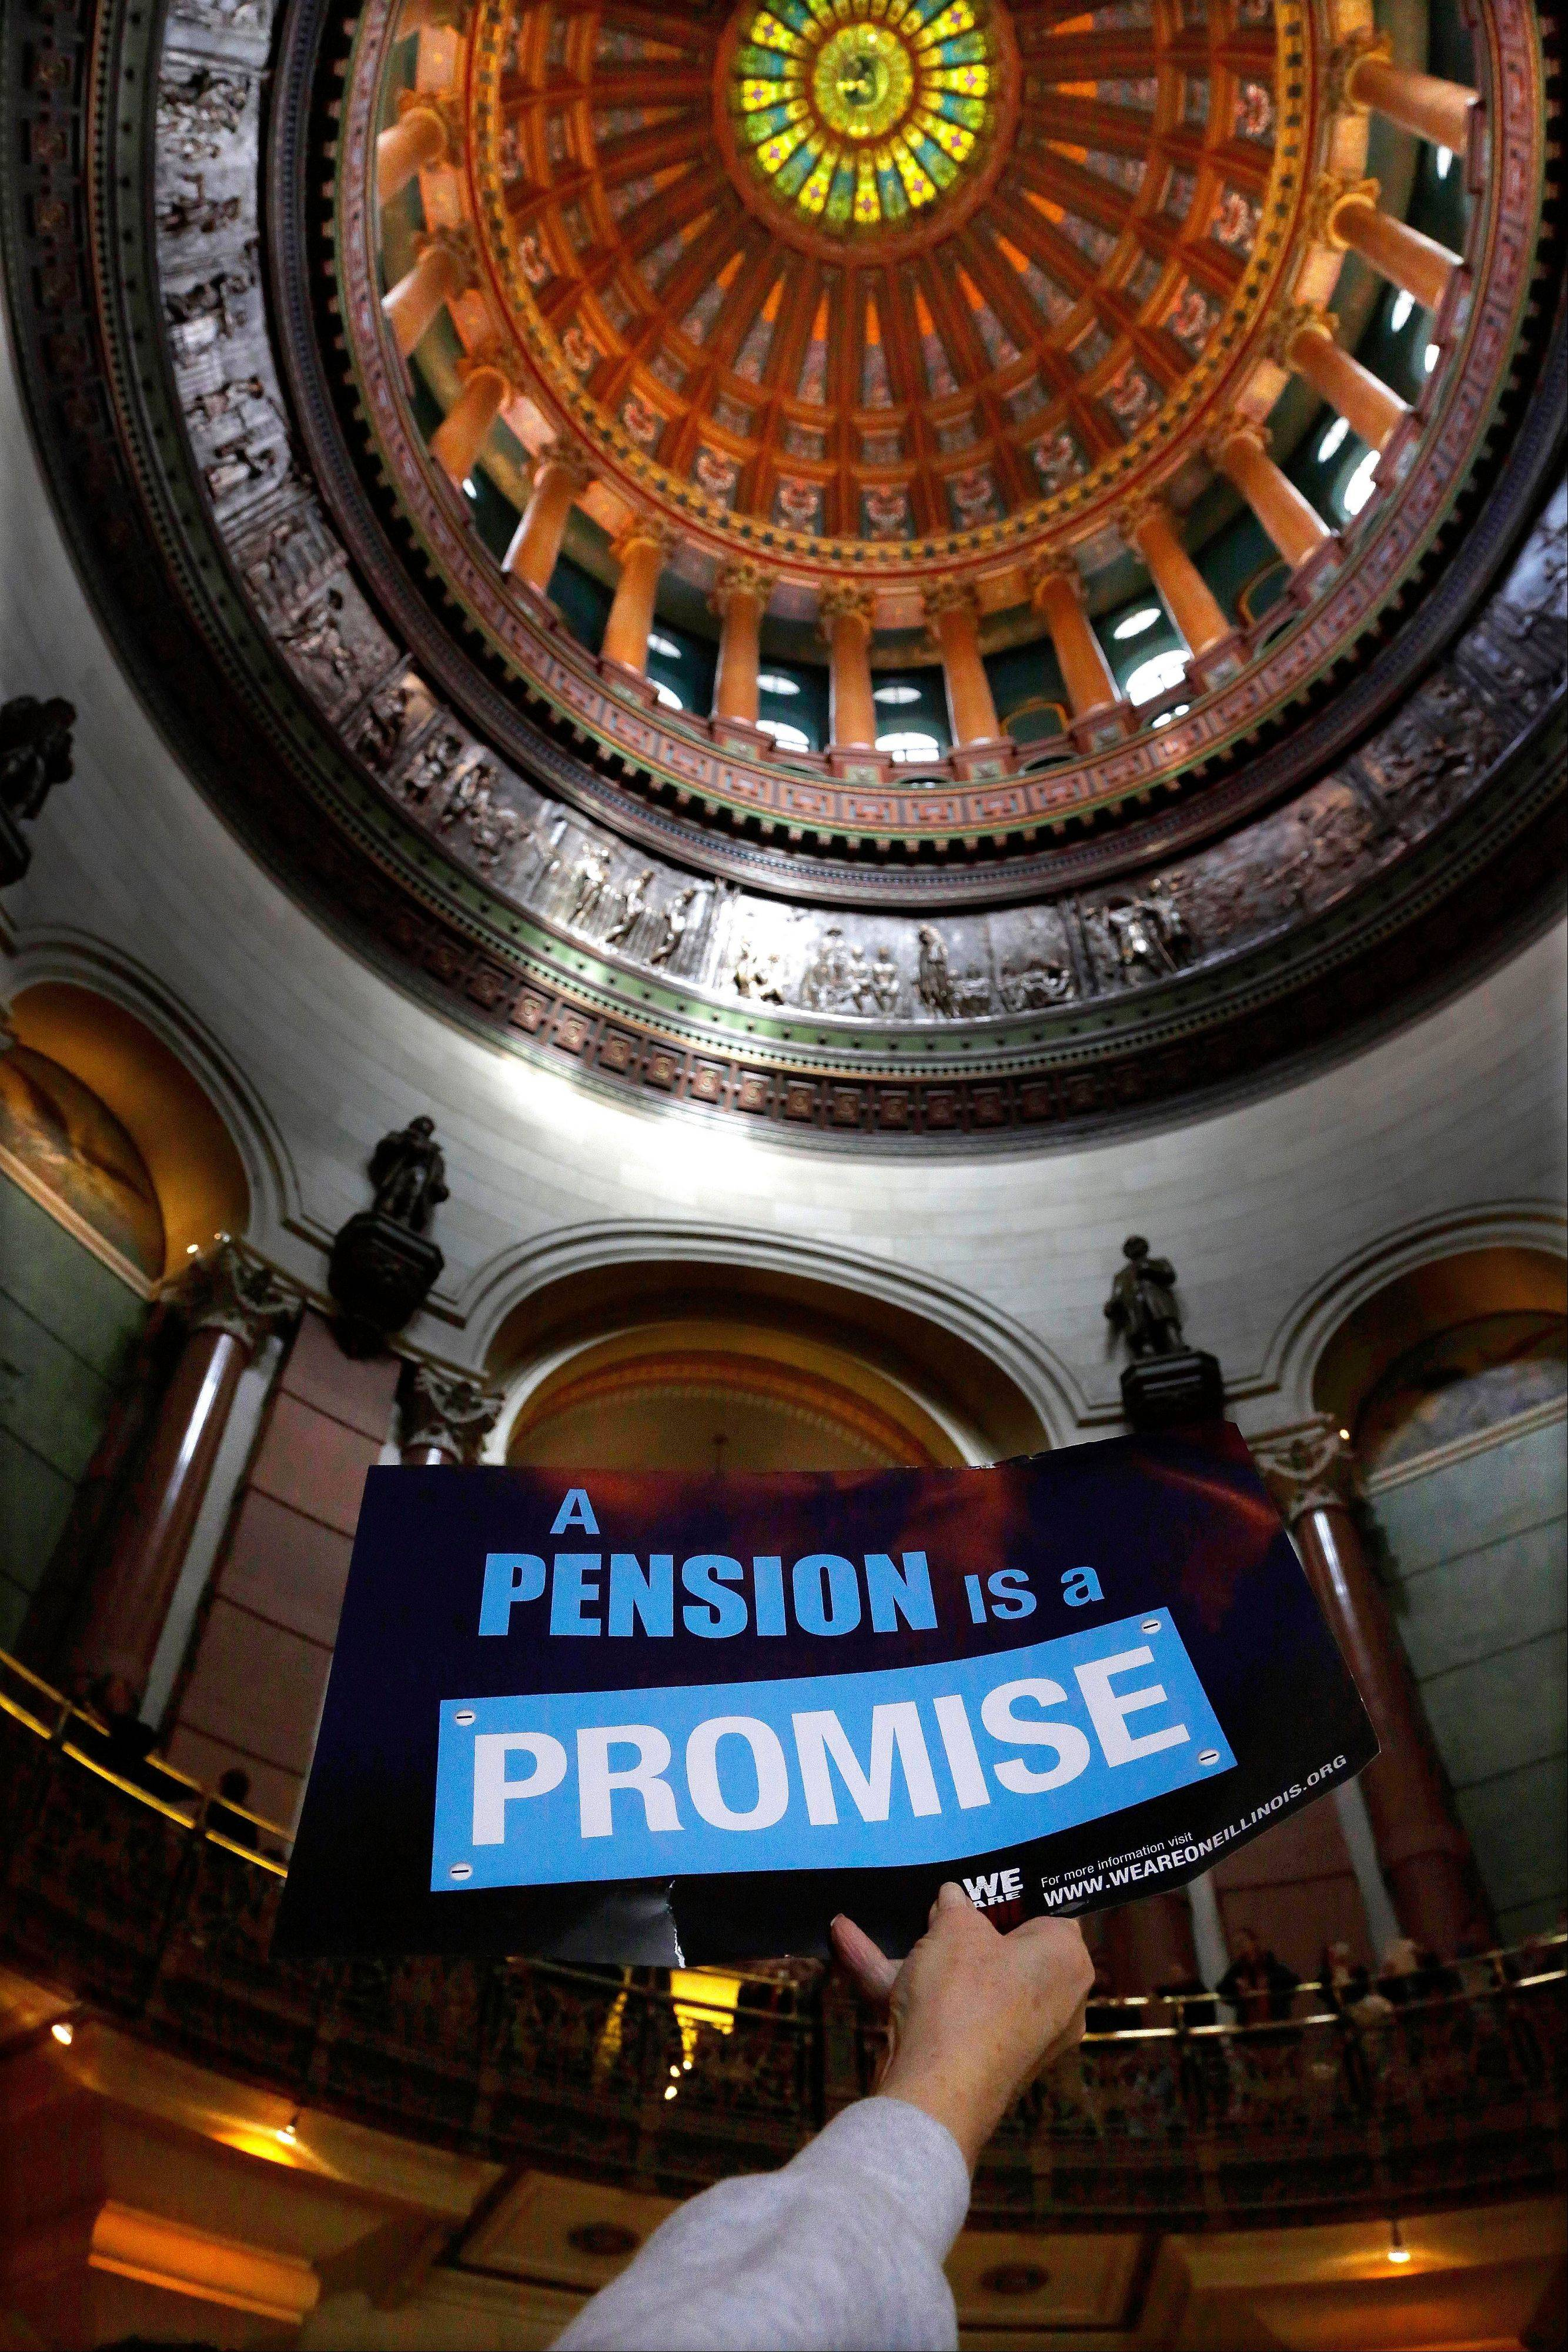 Union members and supporters rally for fair pension reform in the rotunda of the Illinois State Capitol in Springfield Thursday.